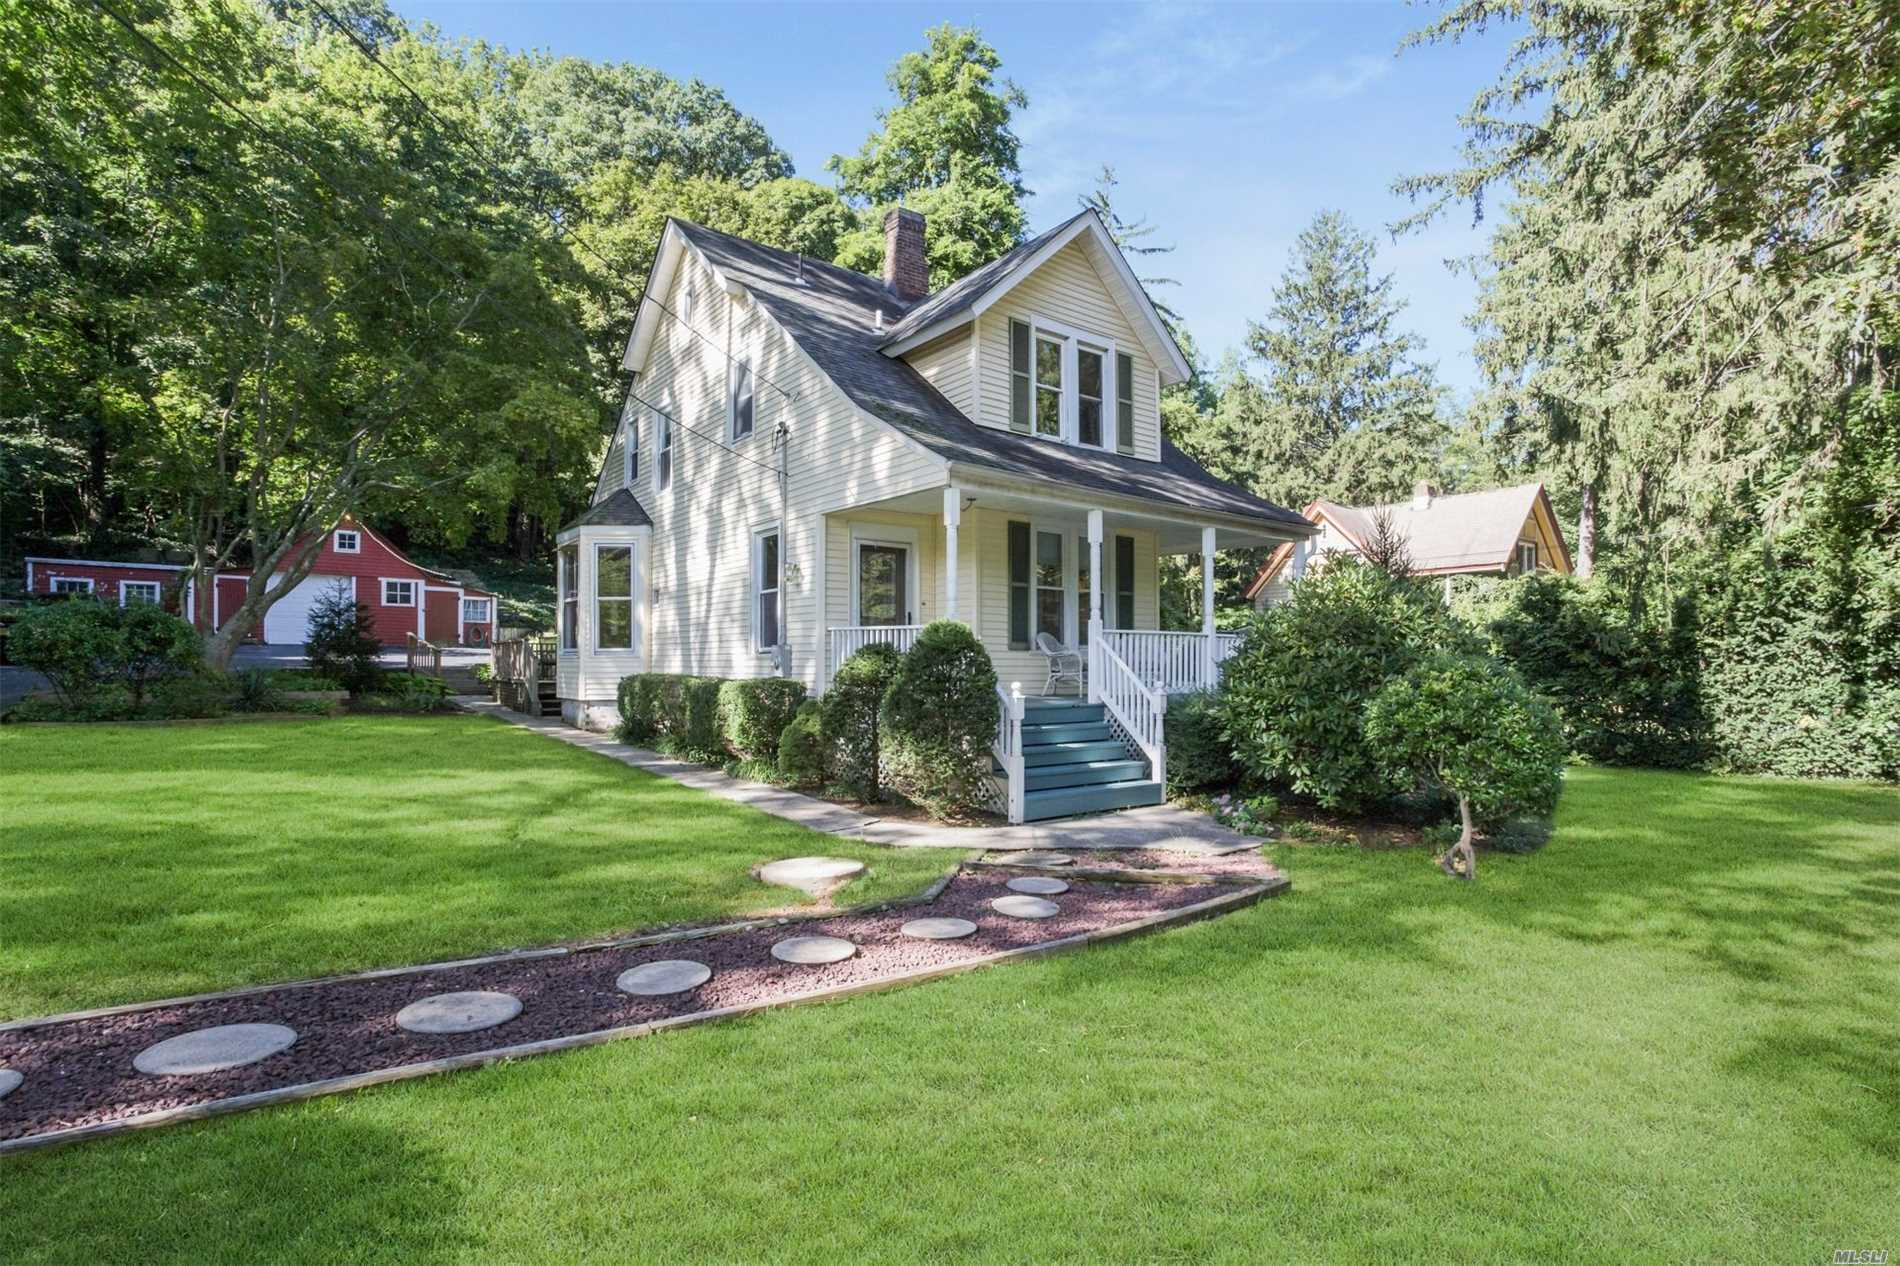 Photo of home for sale at 619 Park Ave, Huntington NY